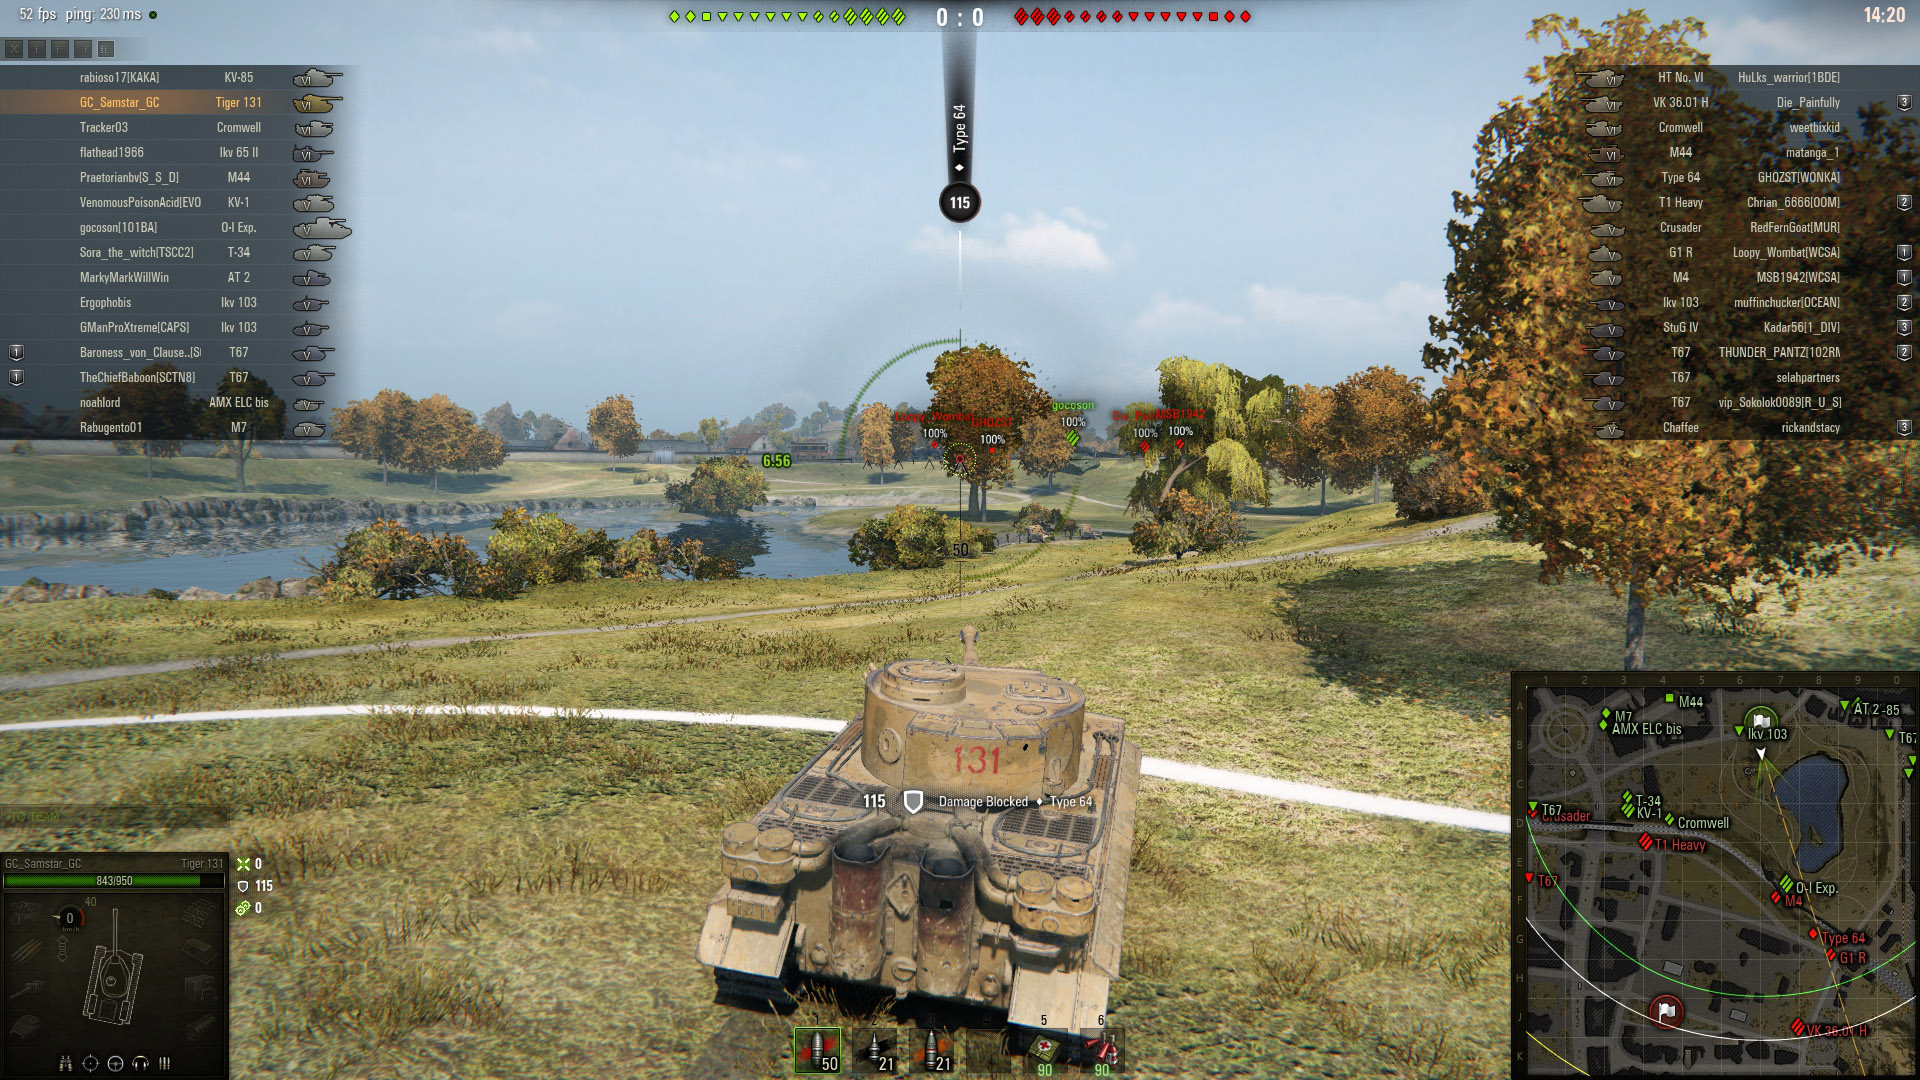 The Tiger 131 can effectively bounce shots when top- or at-tier.